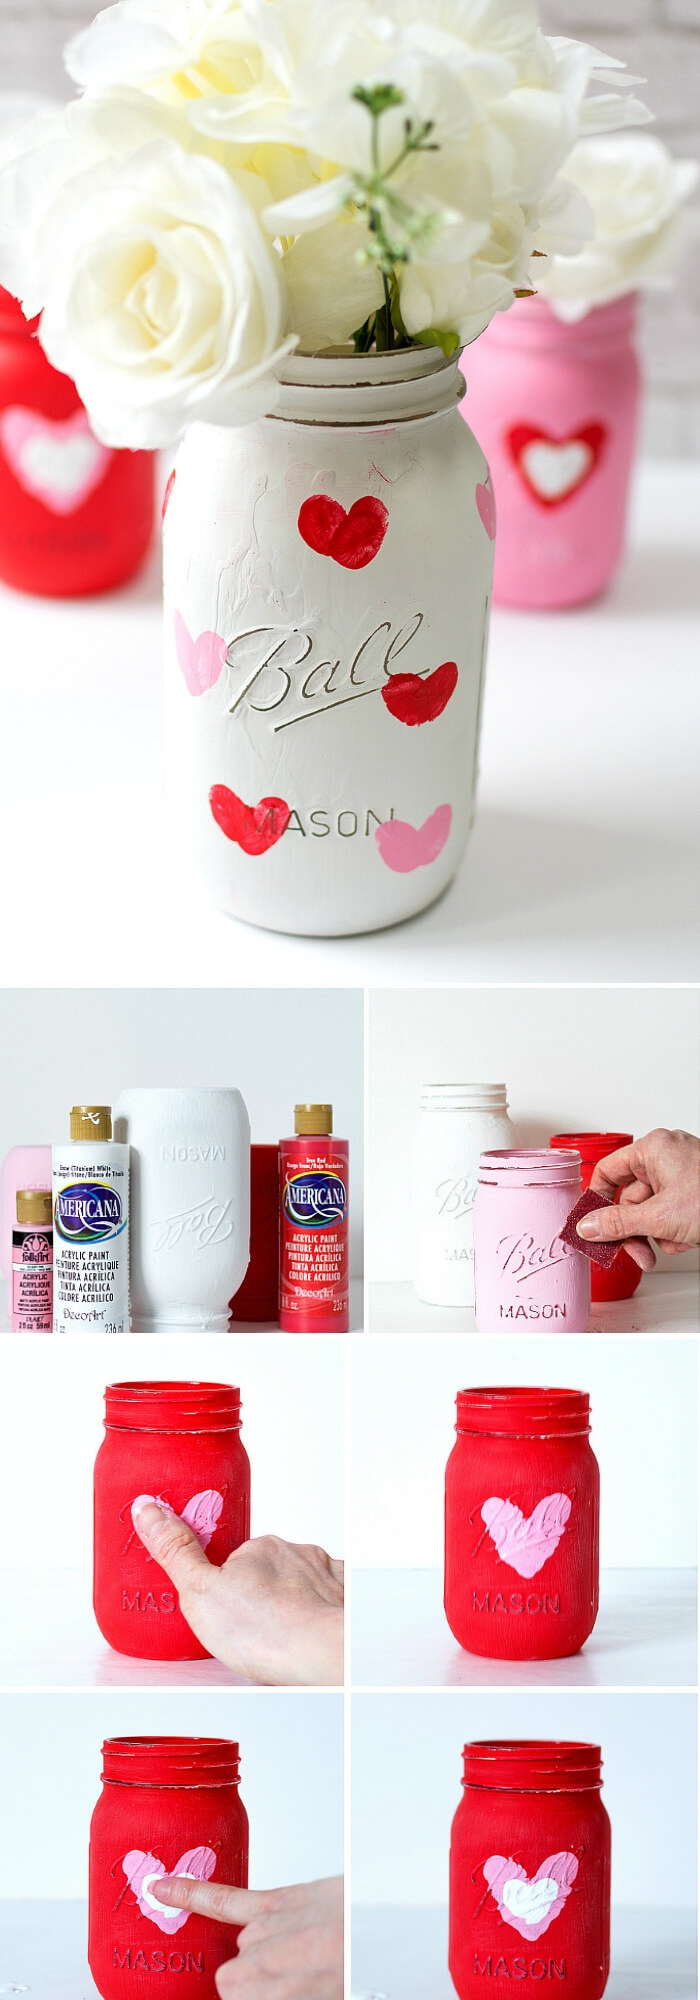 Valentine Kid Craft Thumbprint Heart Jars | DIY Mason Jar Gift Ideas For Valentine's Day | FarmFoodFamily.com